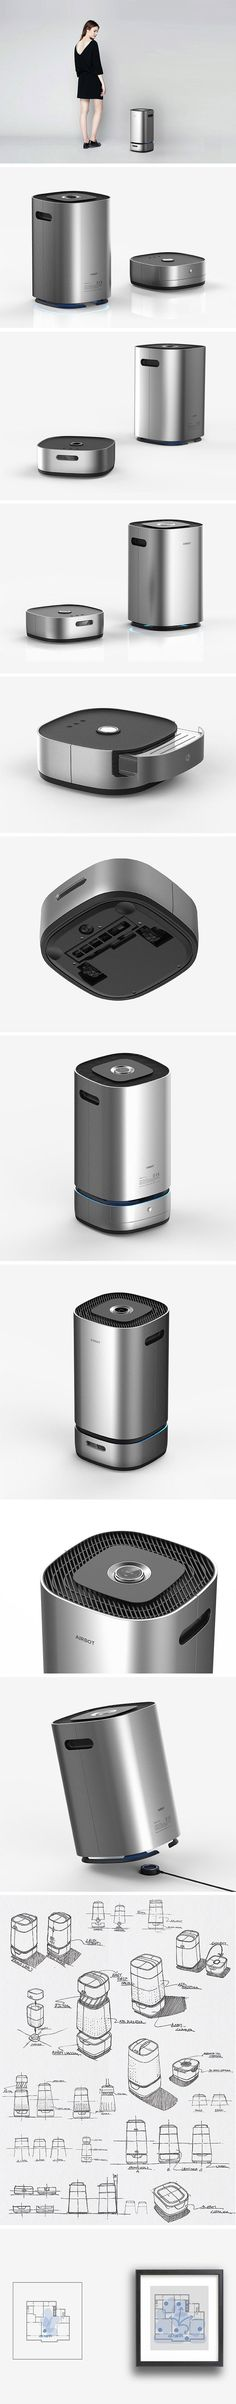 Robot vacuums have come a long way but the AIRBOT takes things to a whole new vertical… literally! The hybrid design includes an autonomous floor vacuum in addition to an air purifier. Since it will be scanning every inch of your apartment anyway, it only makes sense that the floor vacuum detects the indoor air quality from room to room. It's not only a more comprehensive indoor hygiene solution but an adorable tech team working in tandem!